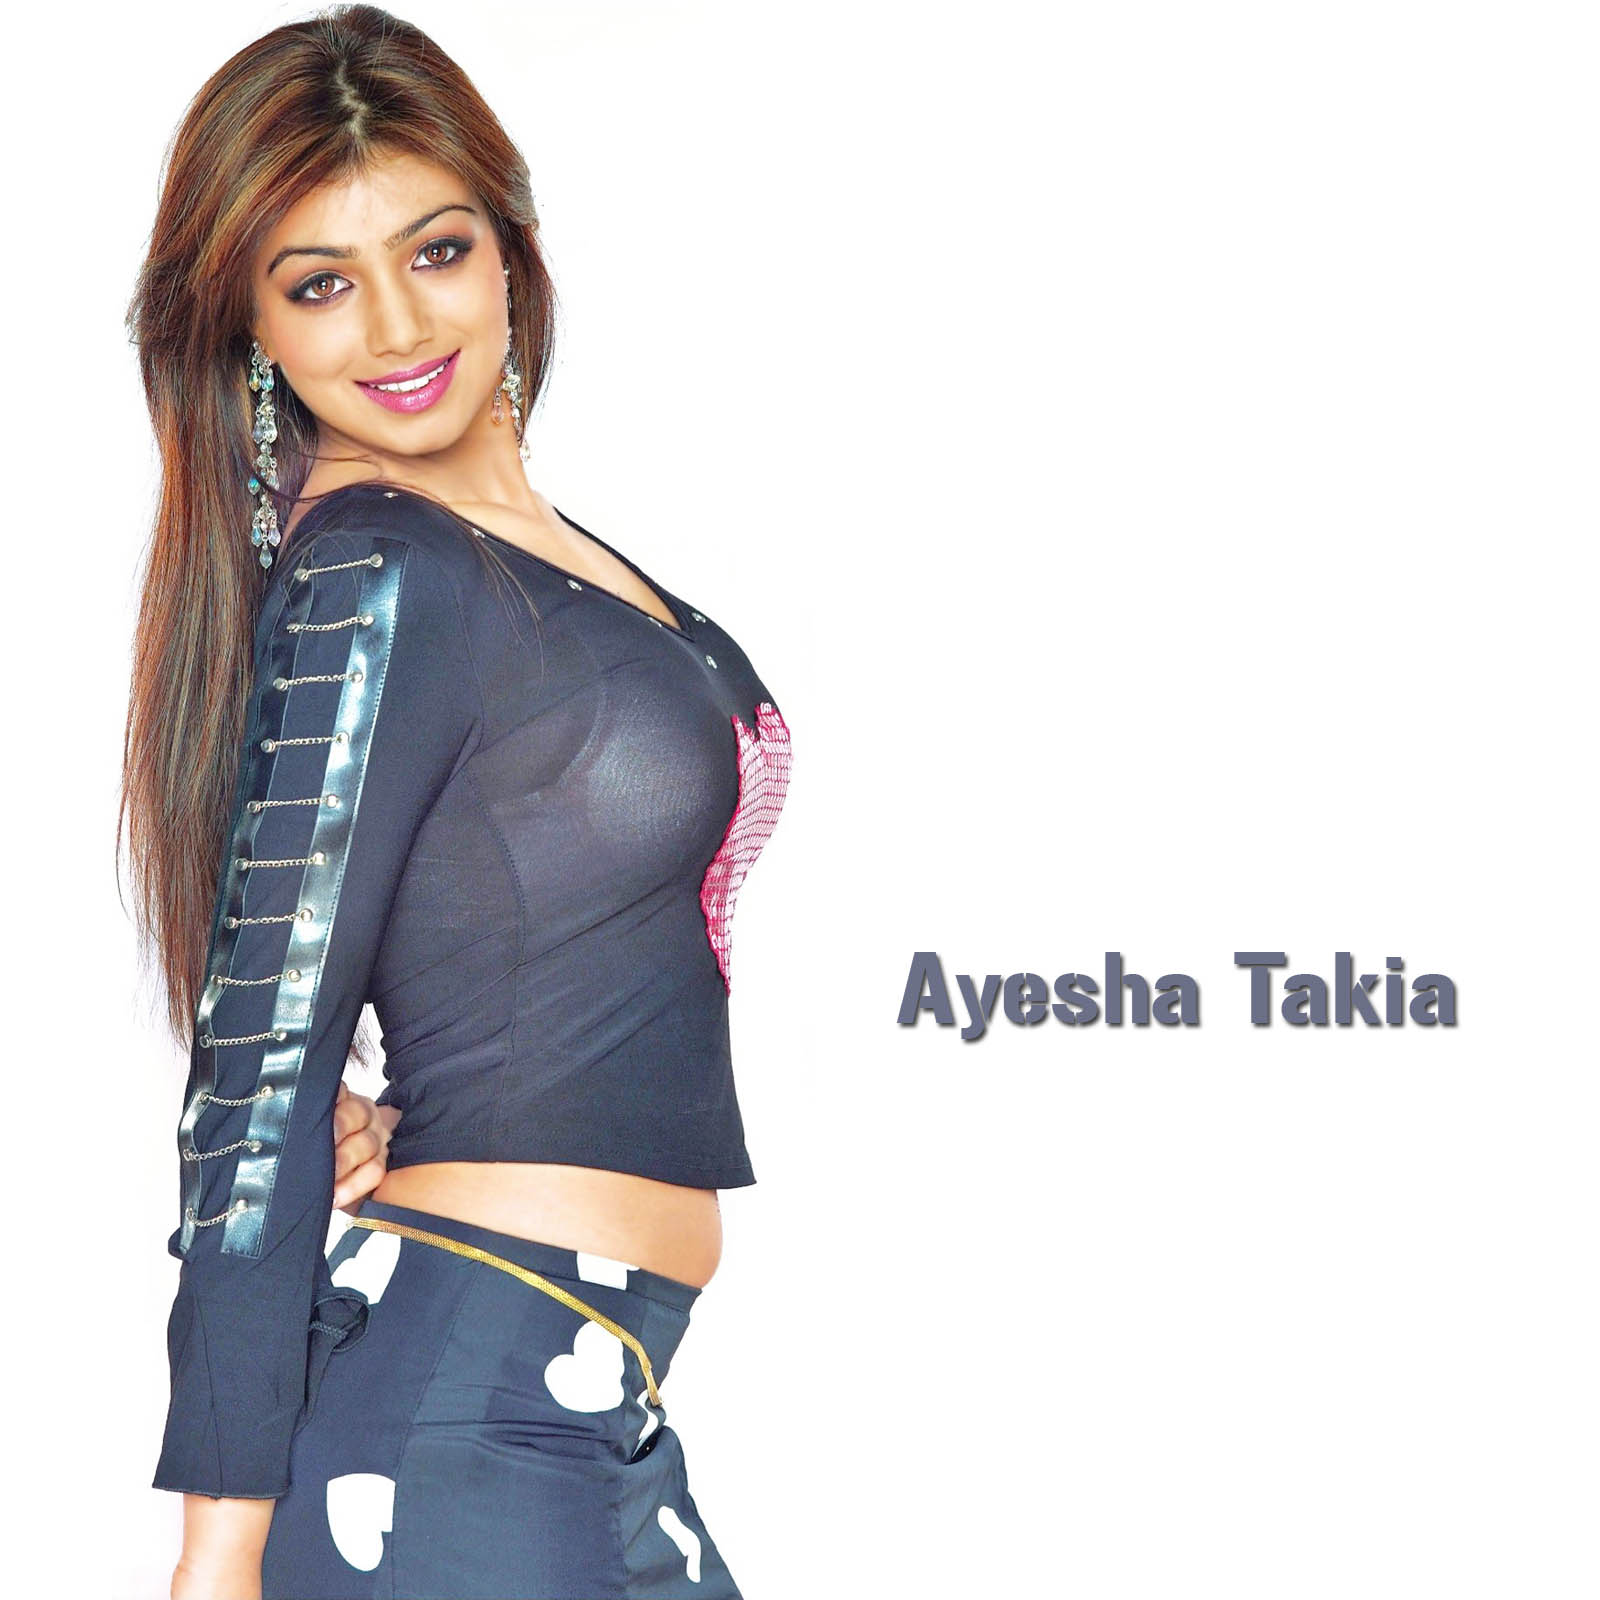 Ayesha Takia Wallpapers  Hot Wallpapers-2245